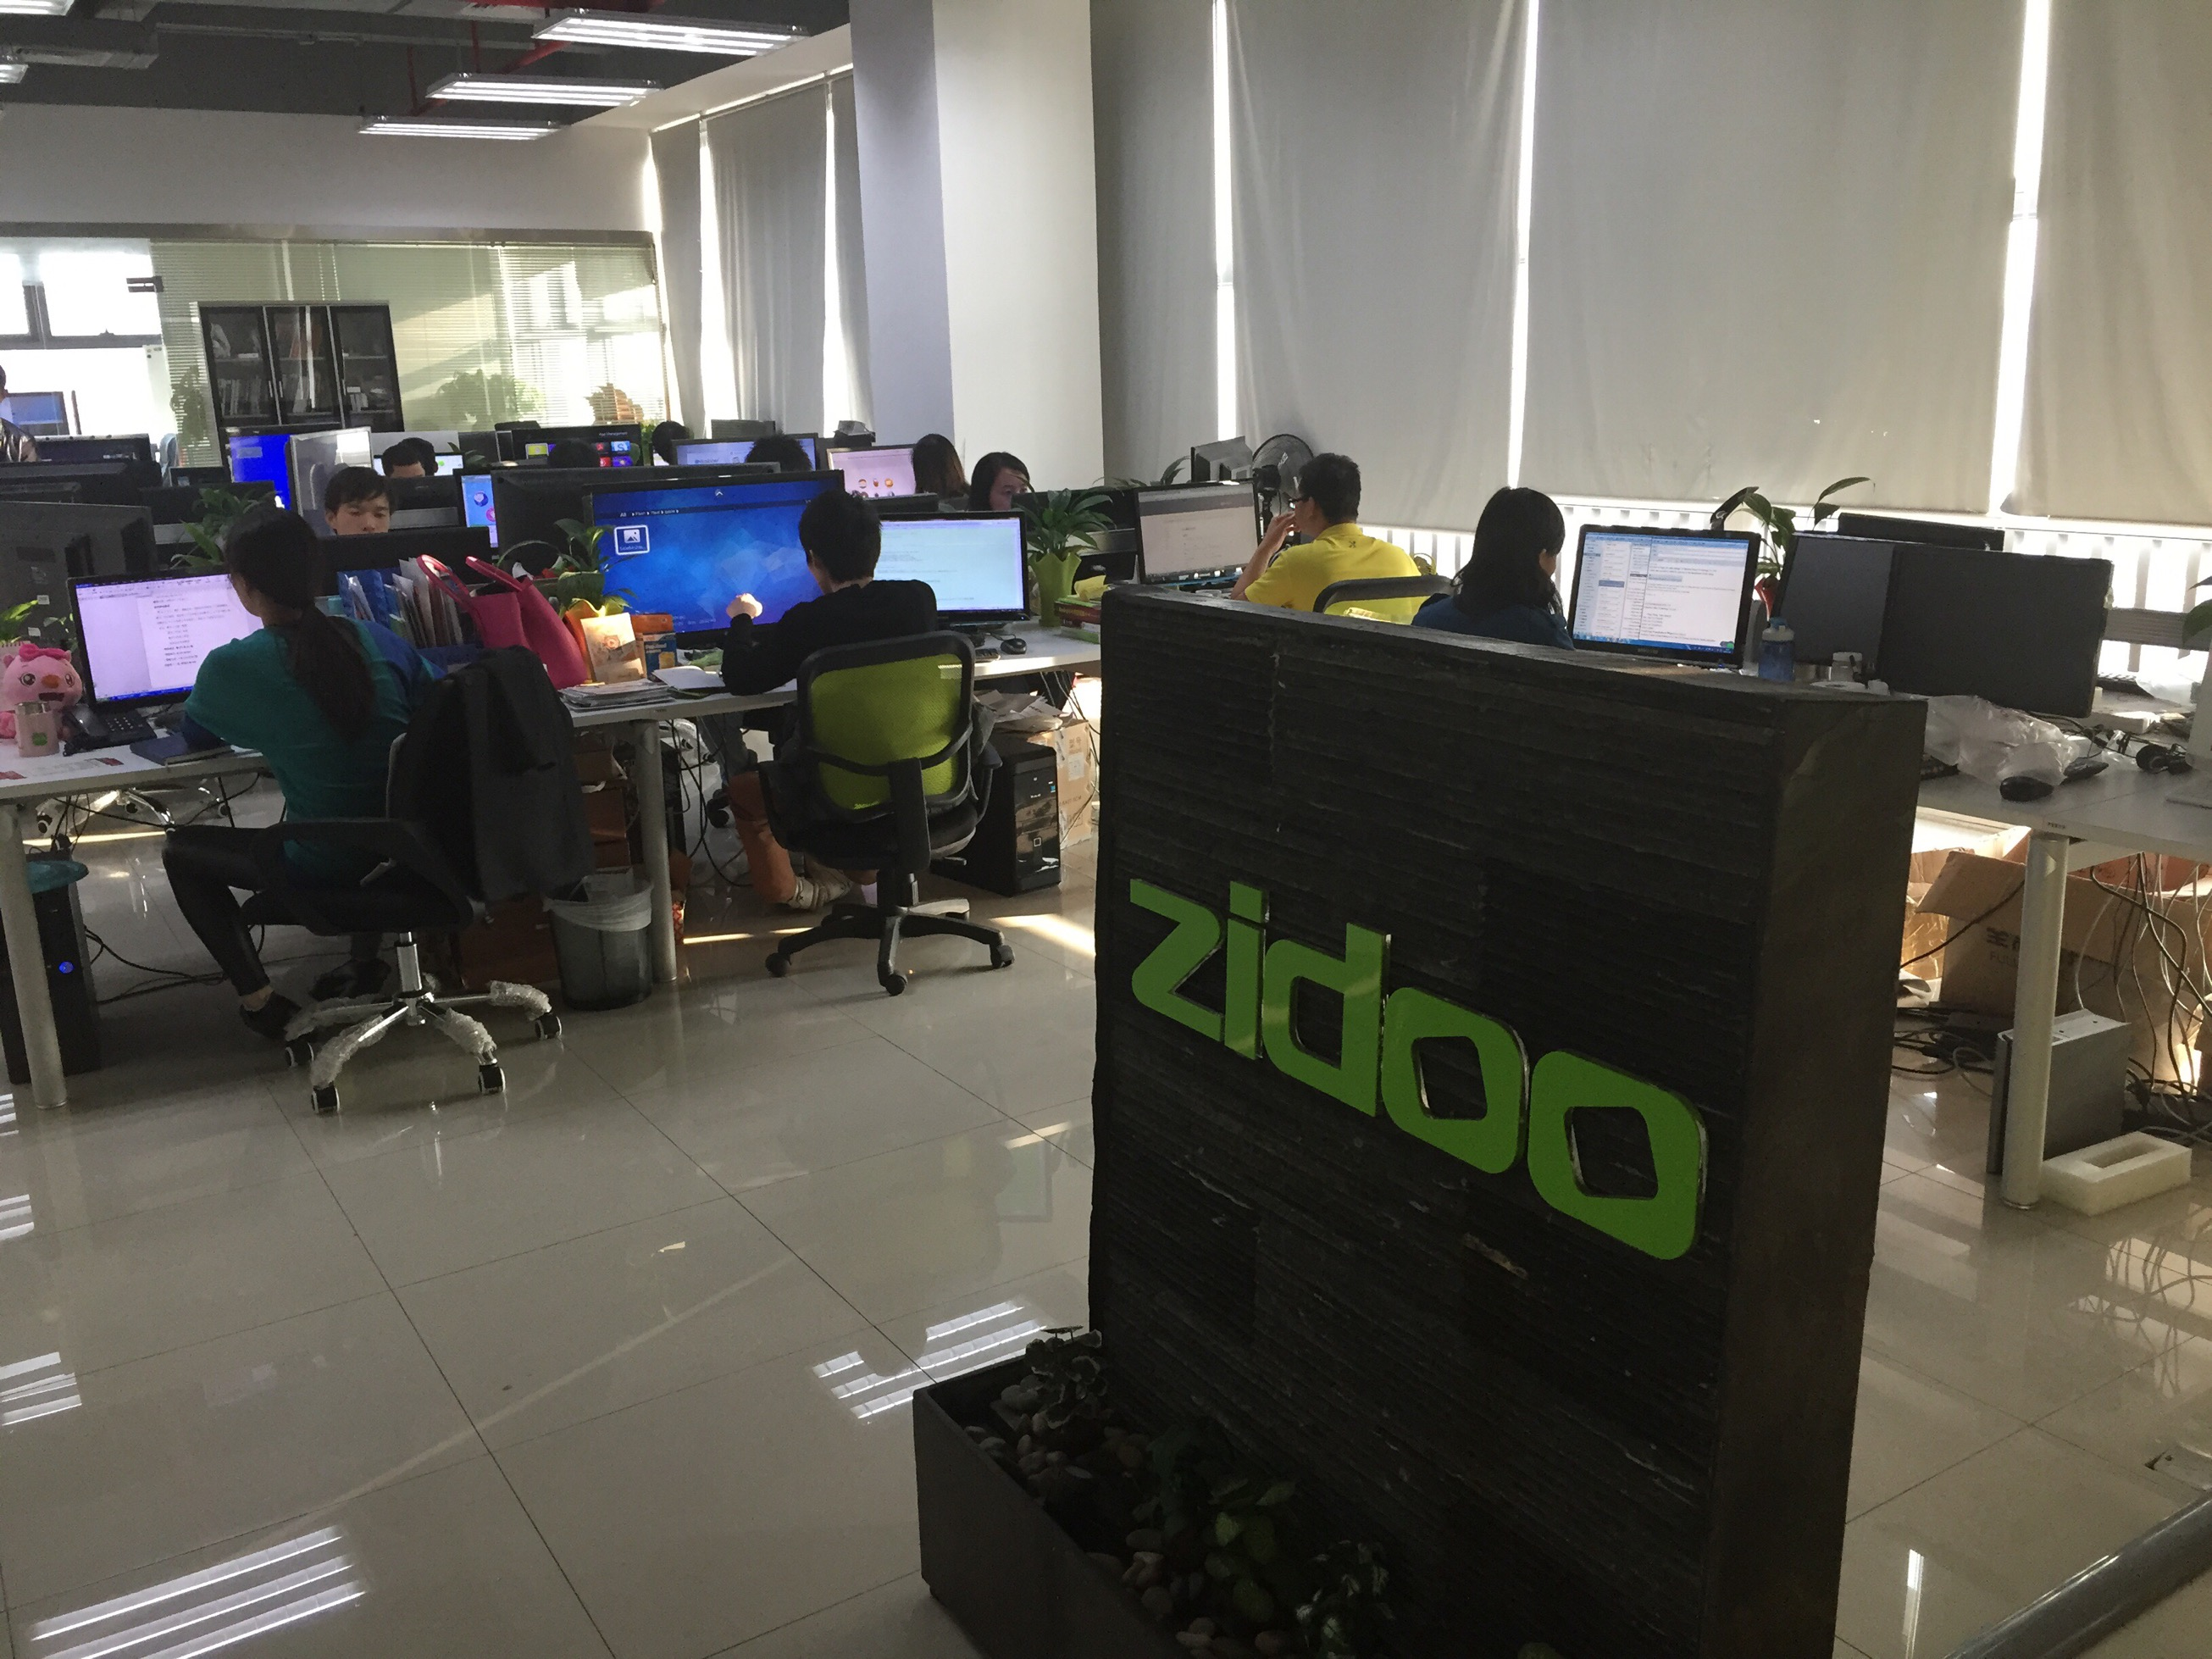 The ZIDOO development team